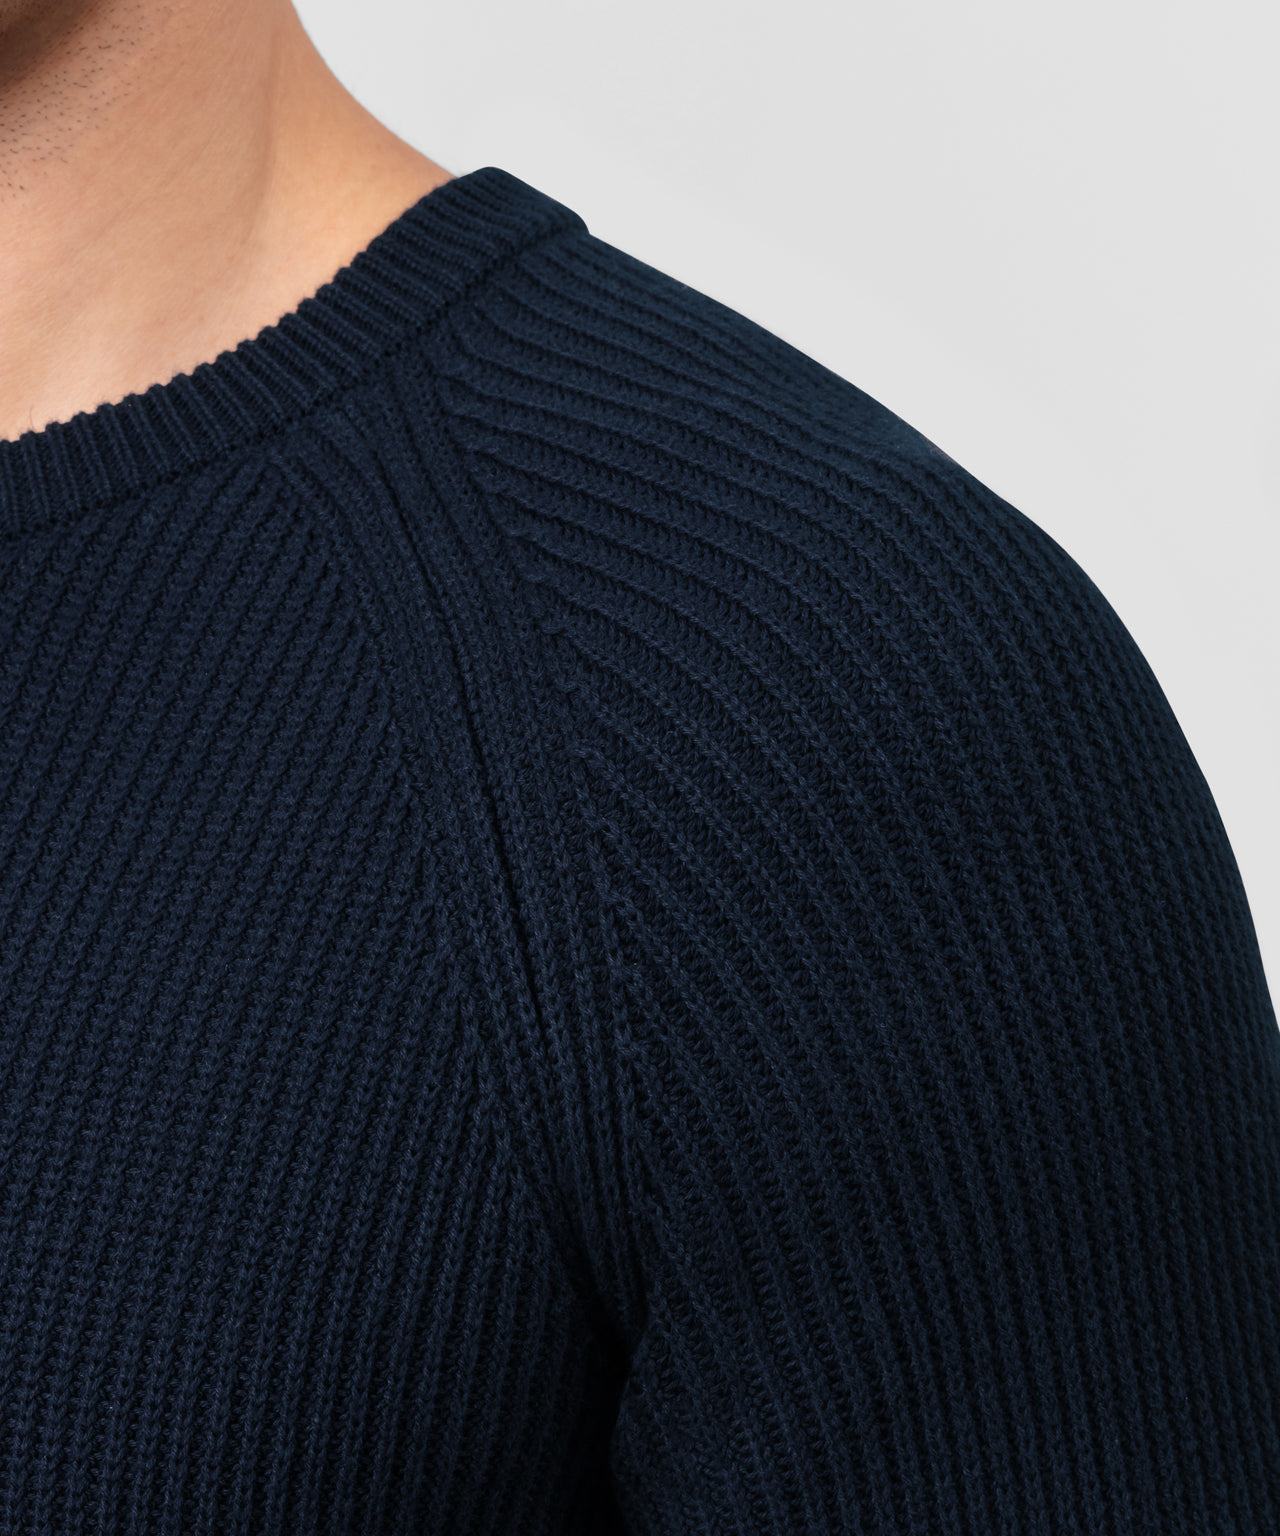 Ribbed Crew Neck Sweater - navy